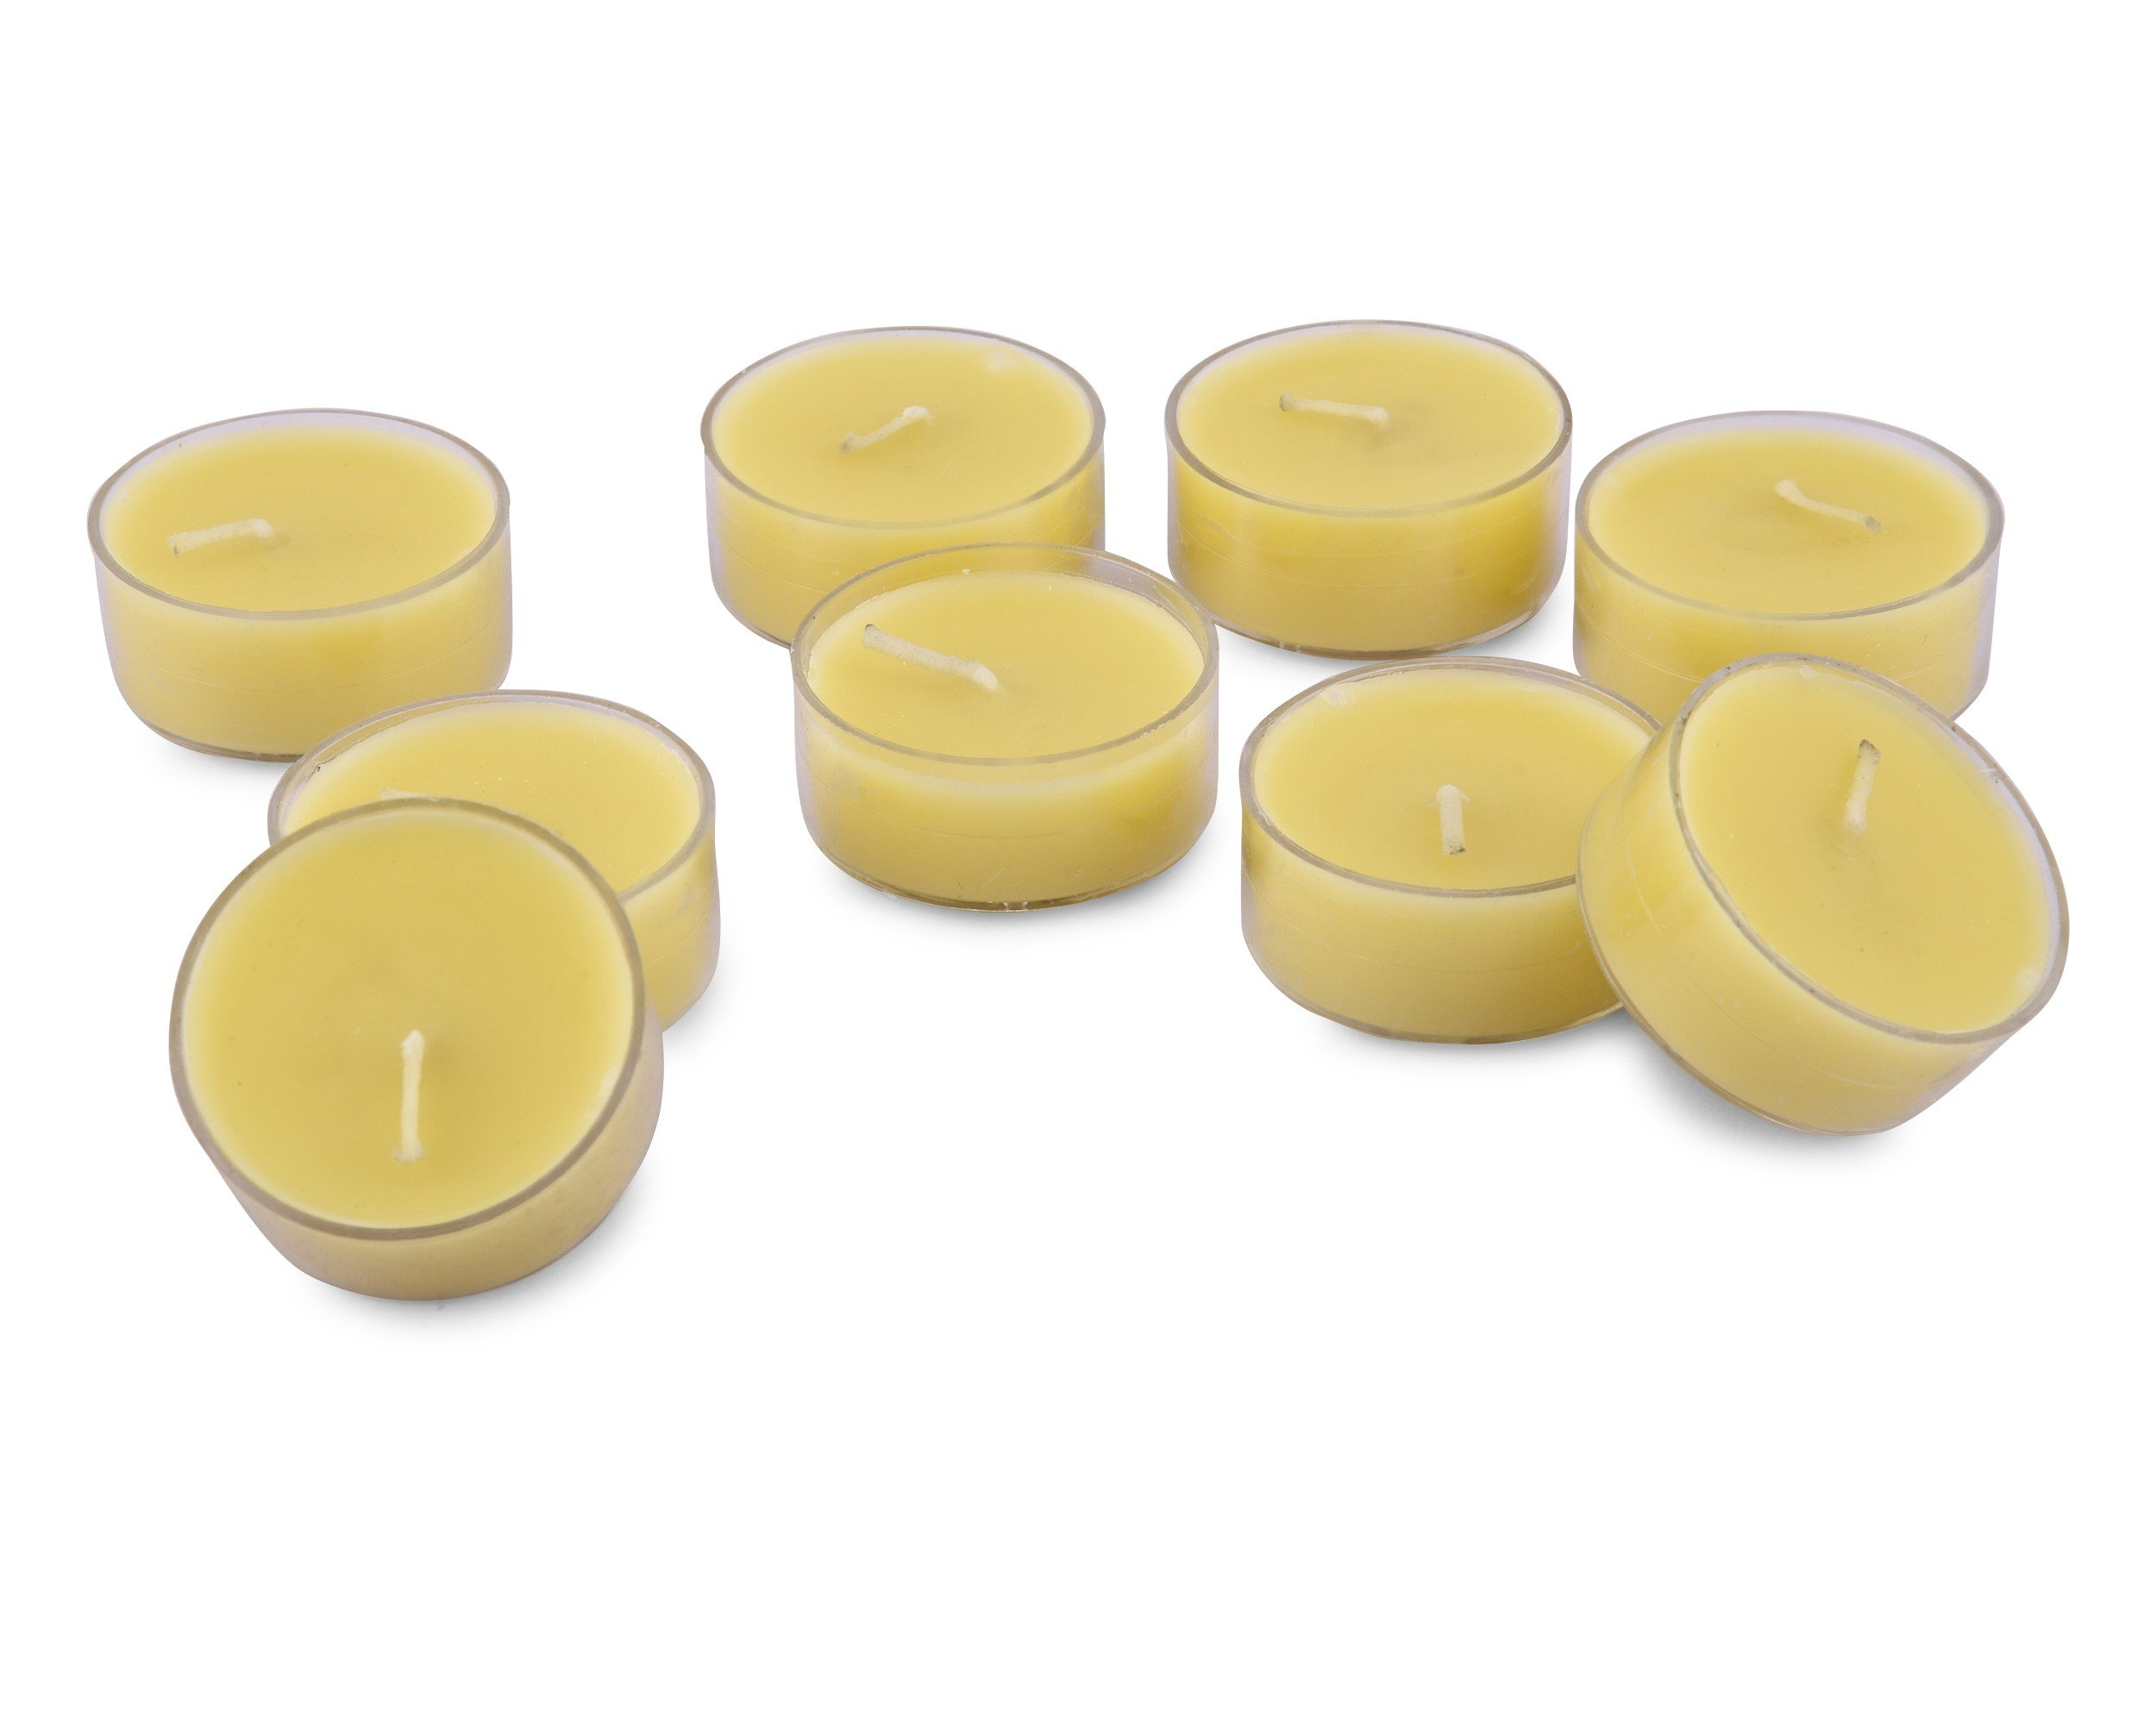 Rosemoore Yellow Lemongrass Scented Tea Lights For Living Room, Washroom, Bedroom, Office by Rose and Moore (Image #2)